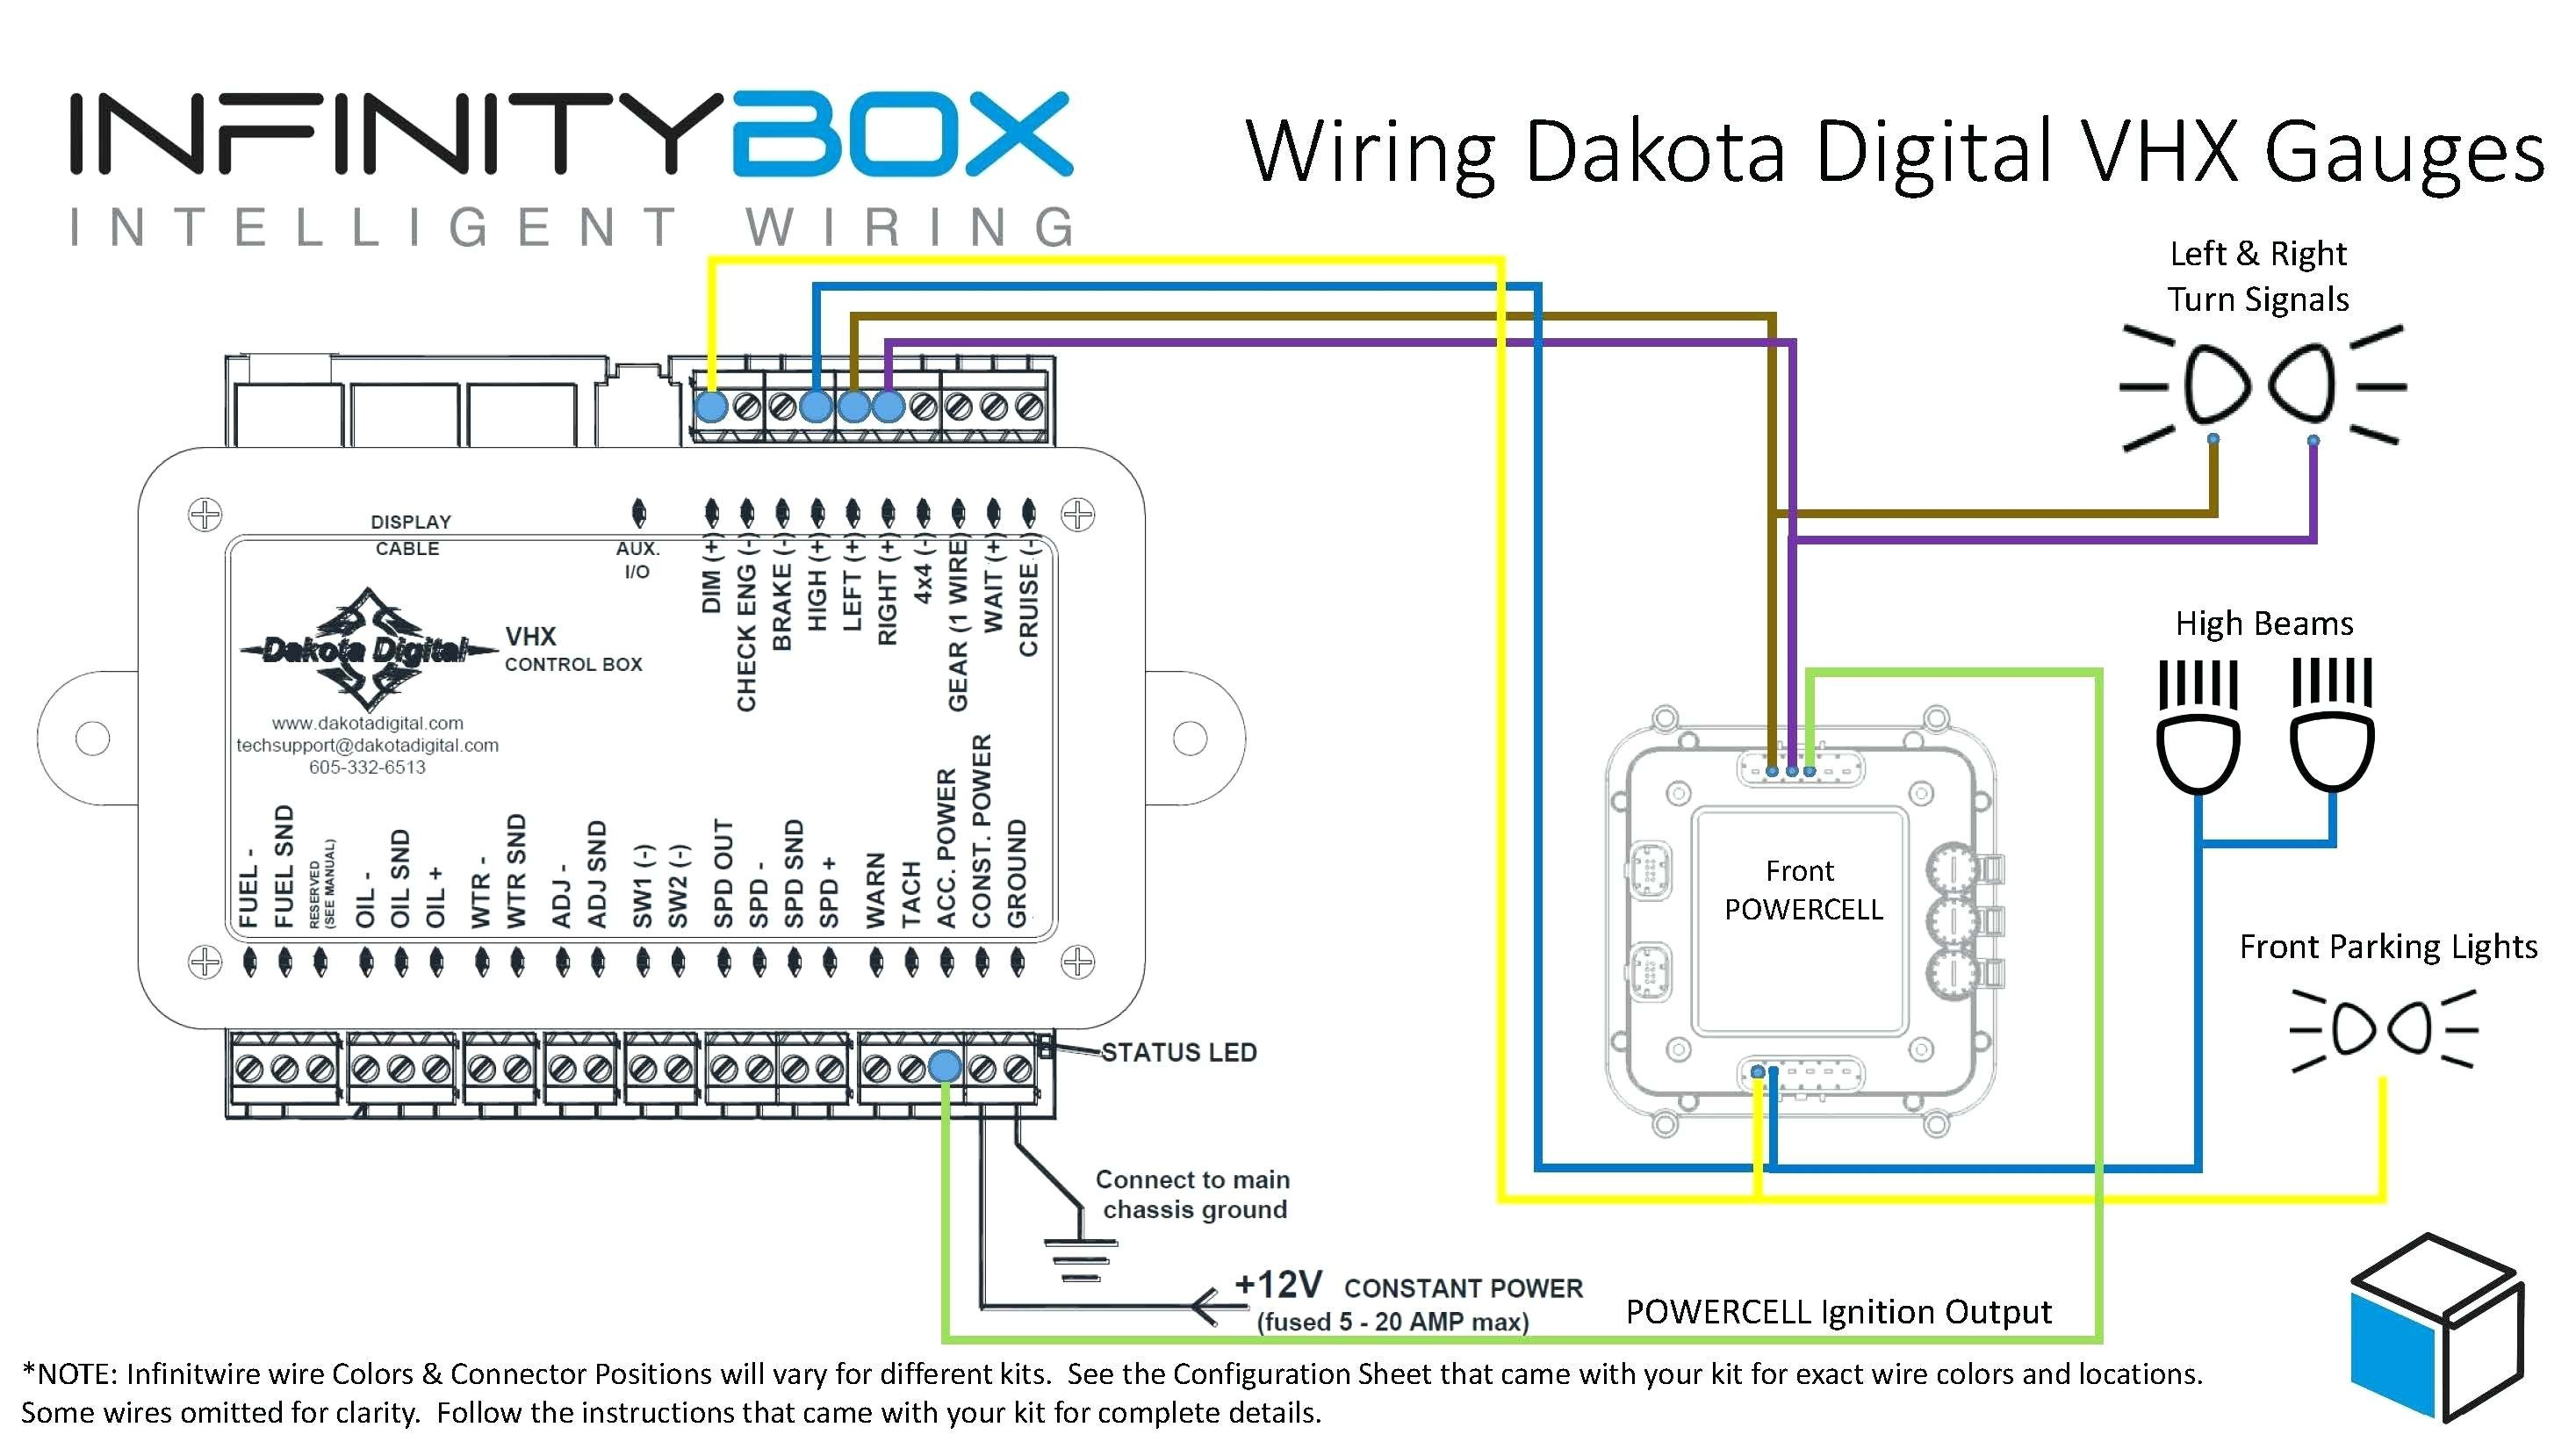 Hid Card Reader Wiring Diagram Stunning Hid Card Reader Wiring Diagram S Everything You Need Of Hid Card Reader Wiring Diagram